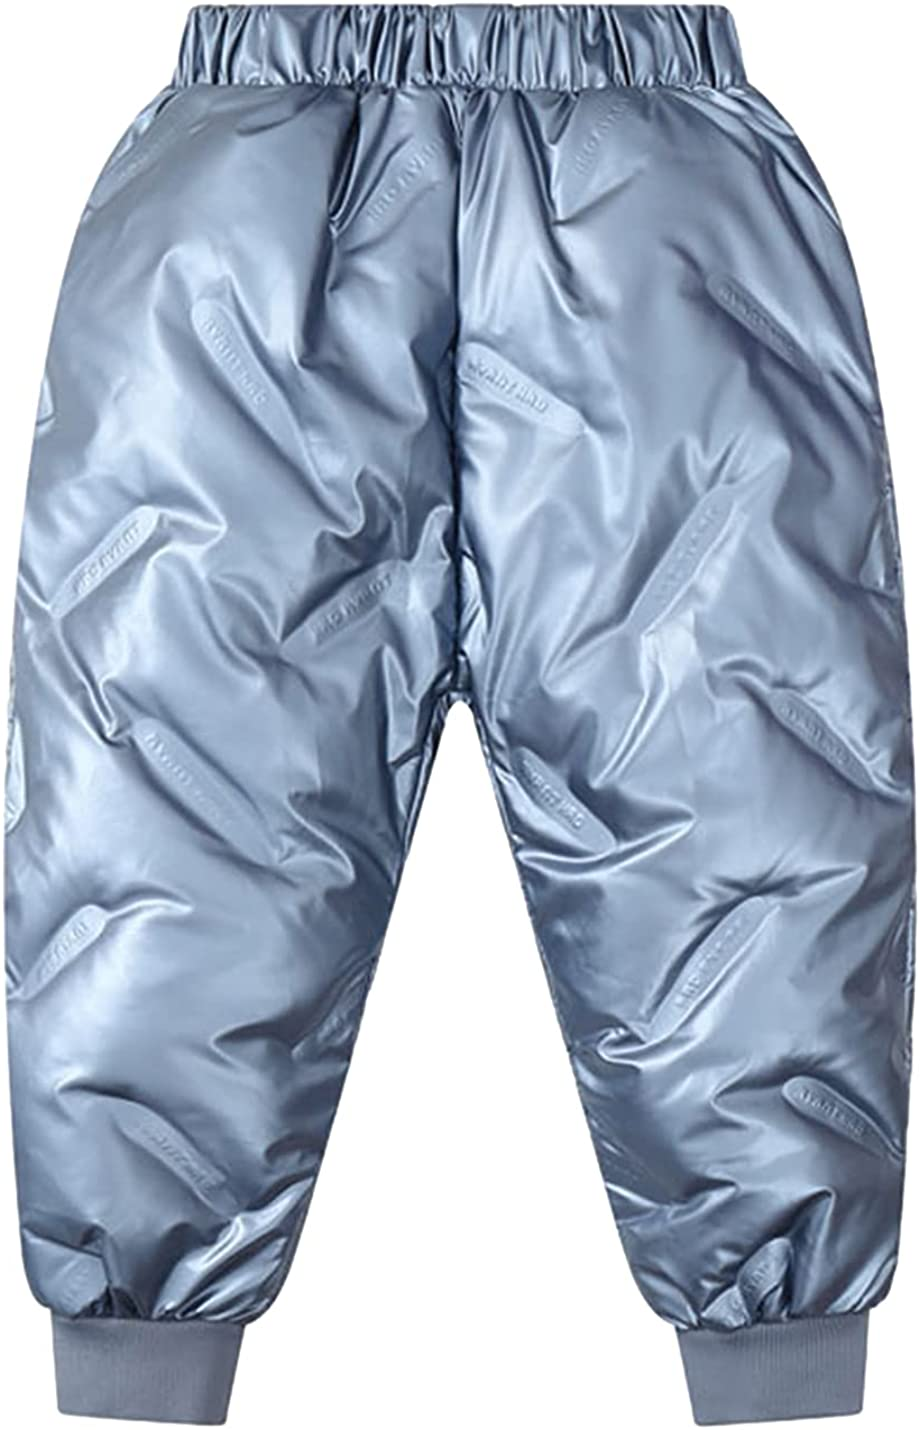 AMEBELLE Unisex Shiny Waterproof Down Pants Warm Snow Puffer Pant for 3T-9Y Boy Girl